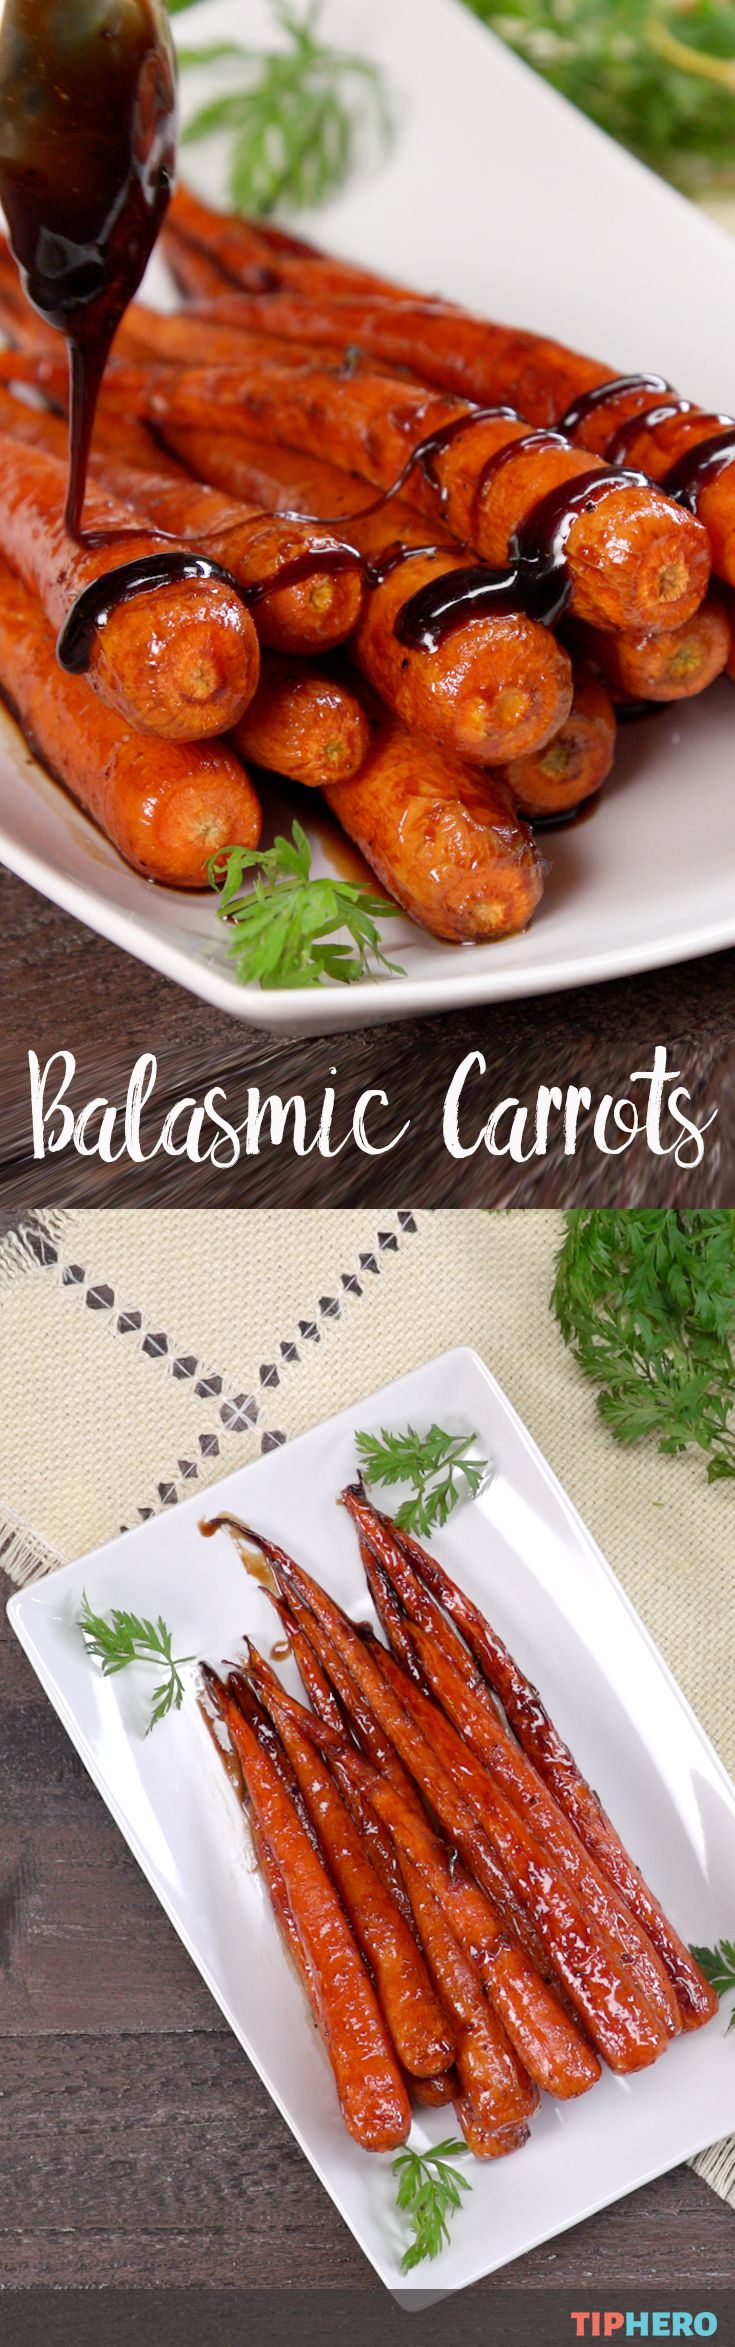 This ultra-delicious way of preparing carrots tastes so indulgent, you'll opt for this healthy side dsh time and time again for a savory side that will elevate any meal. Click for the recipe and how-to video.